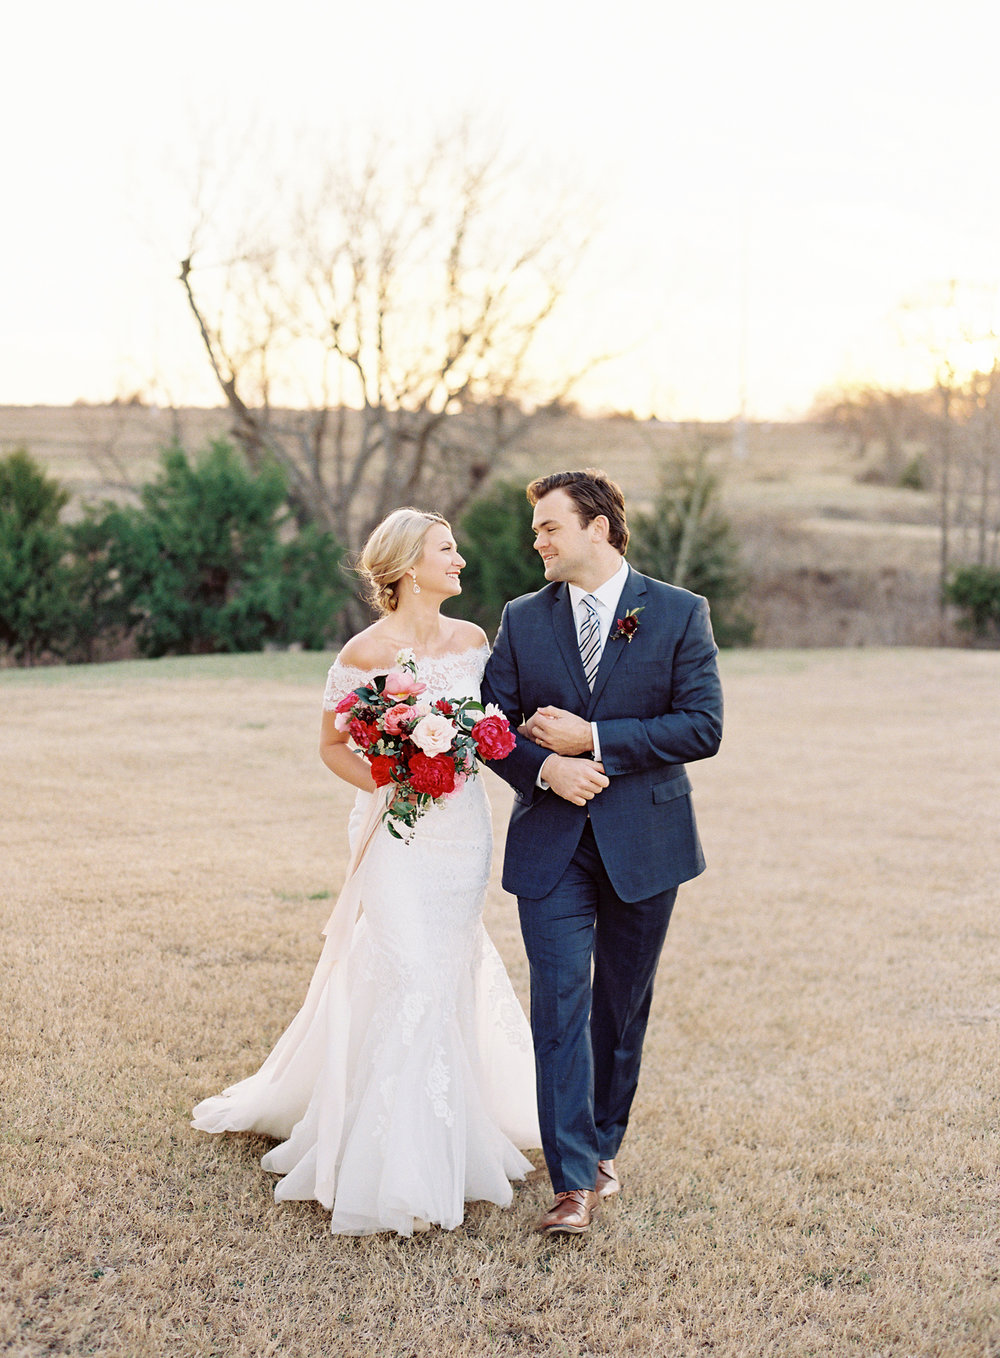 Katie & Blake - An Elegant Holiday Wedding